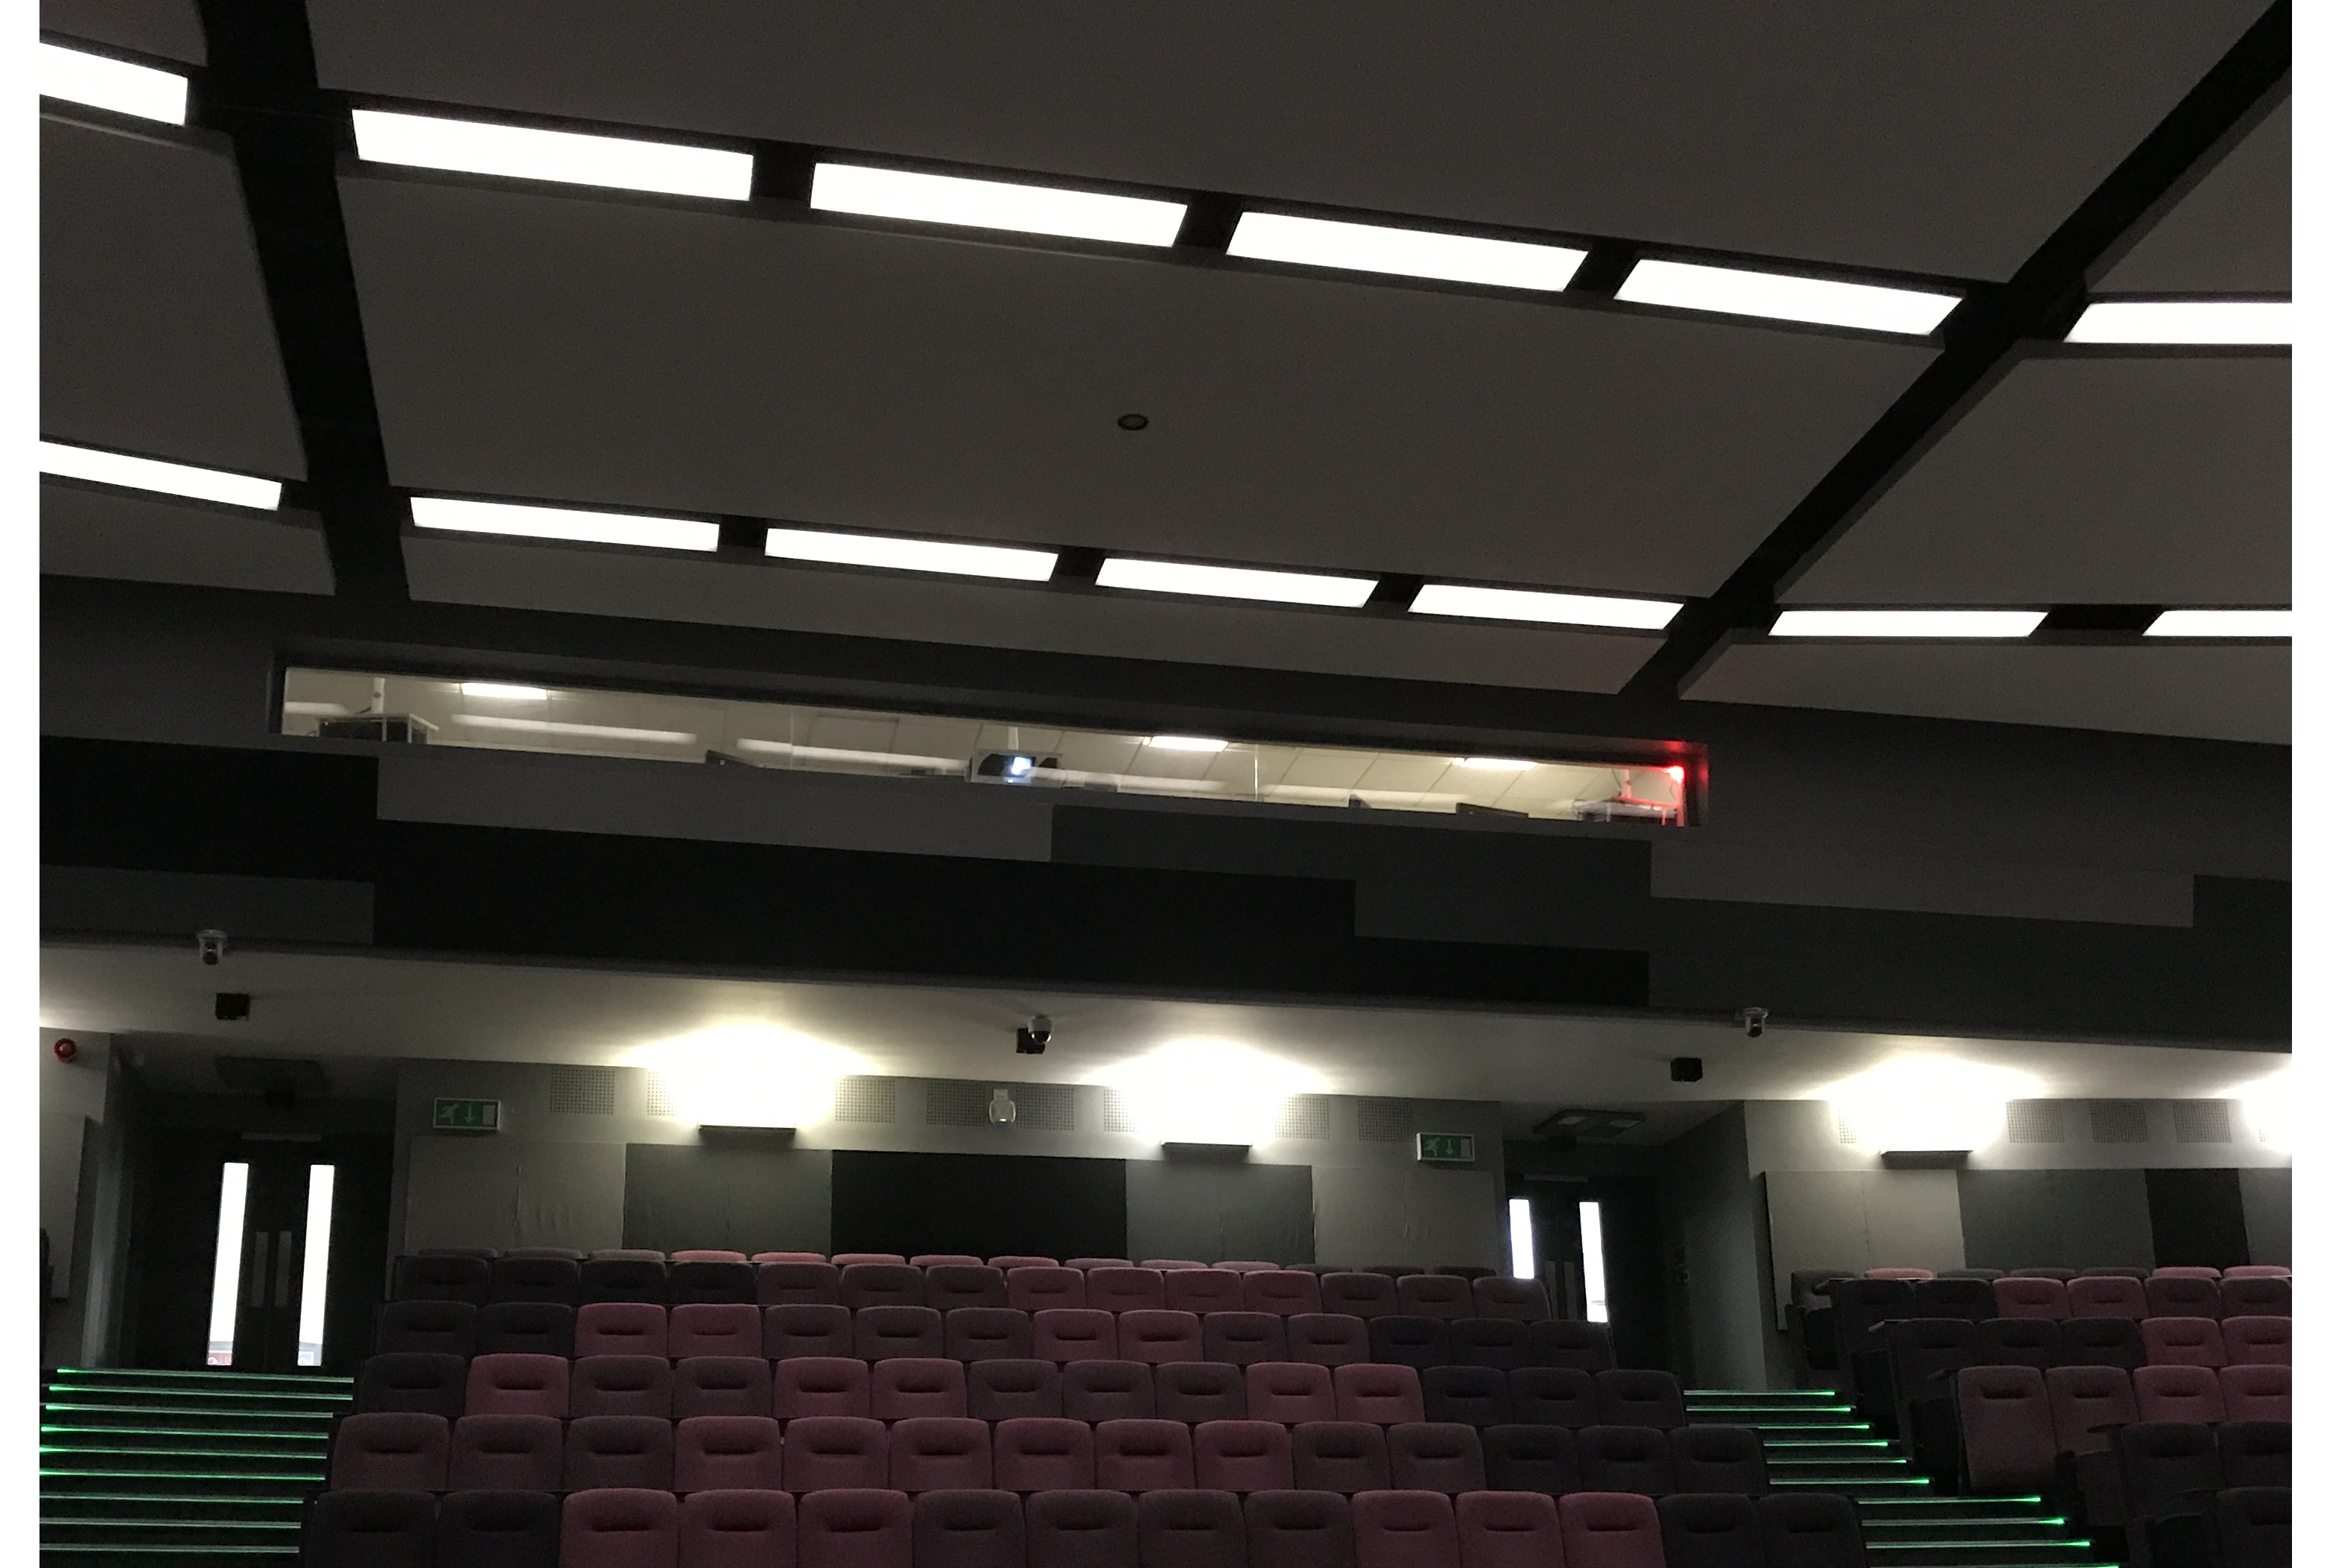 on-air light at the back of the theatre